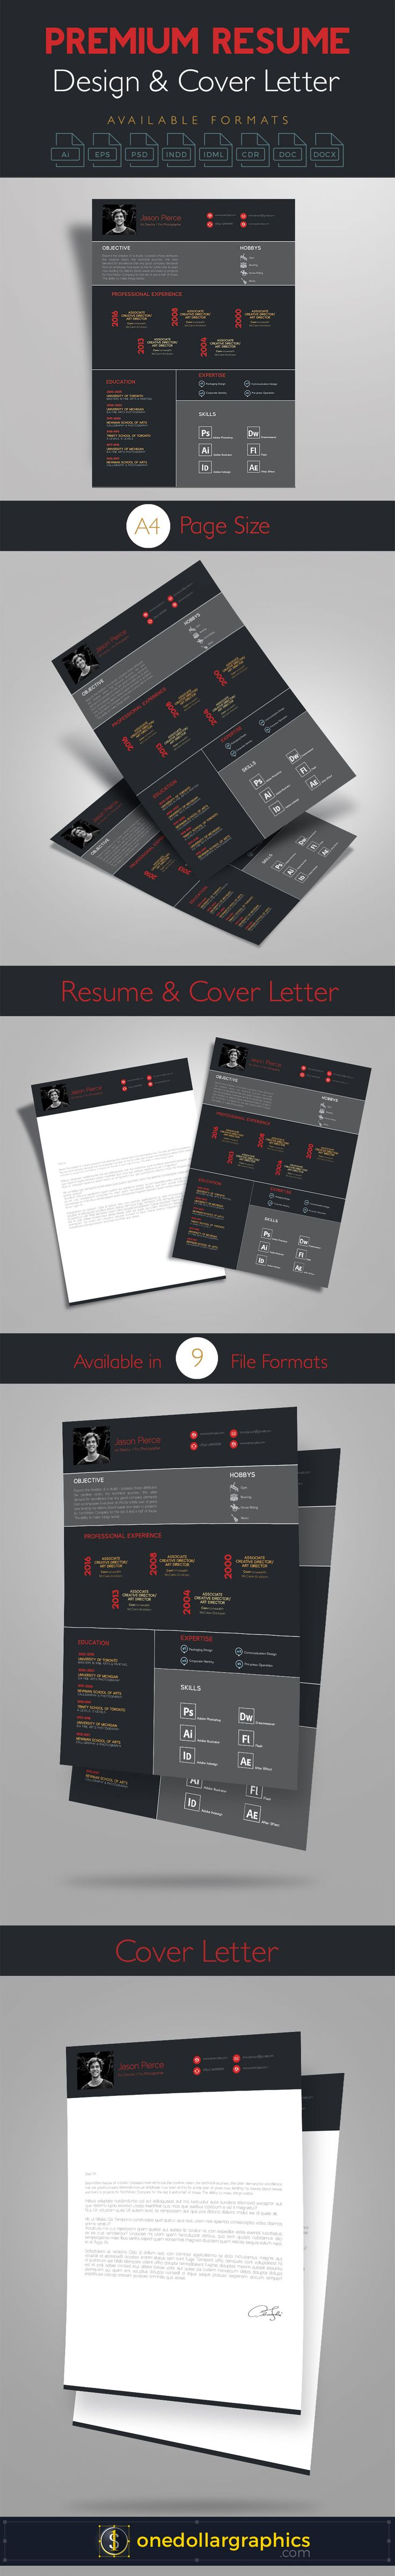 letter format for application%0A Premium Resume  CV  Design  Cover Letter Template    PSD MockUps